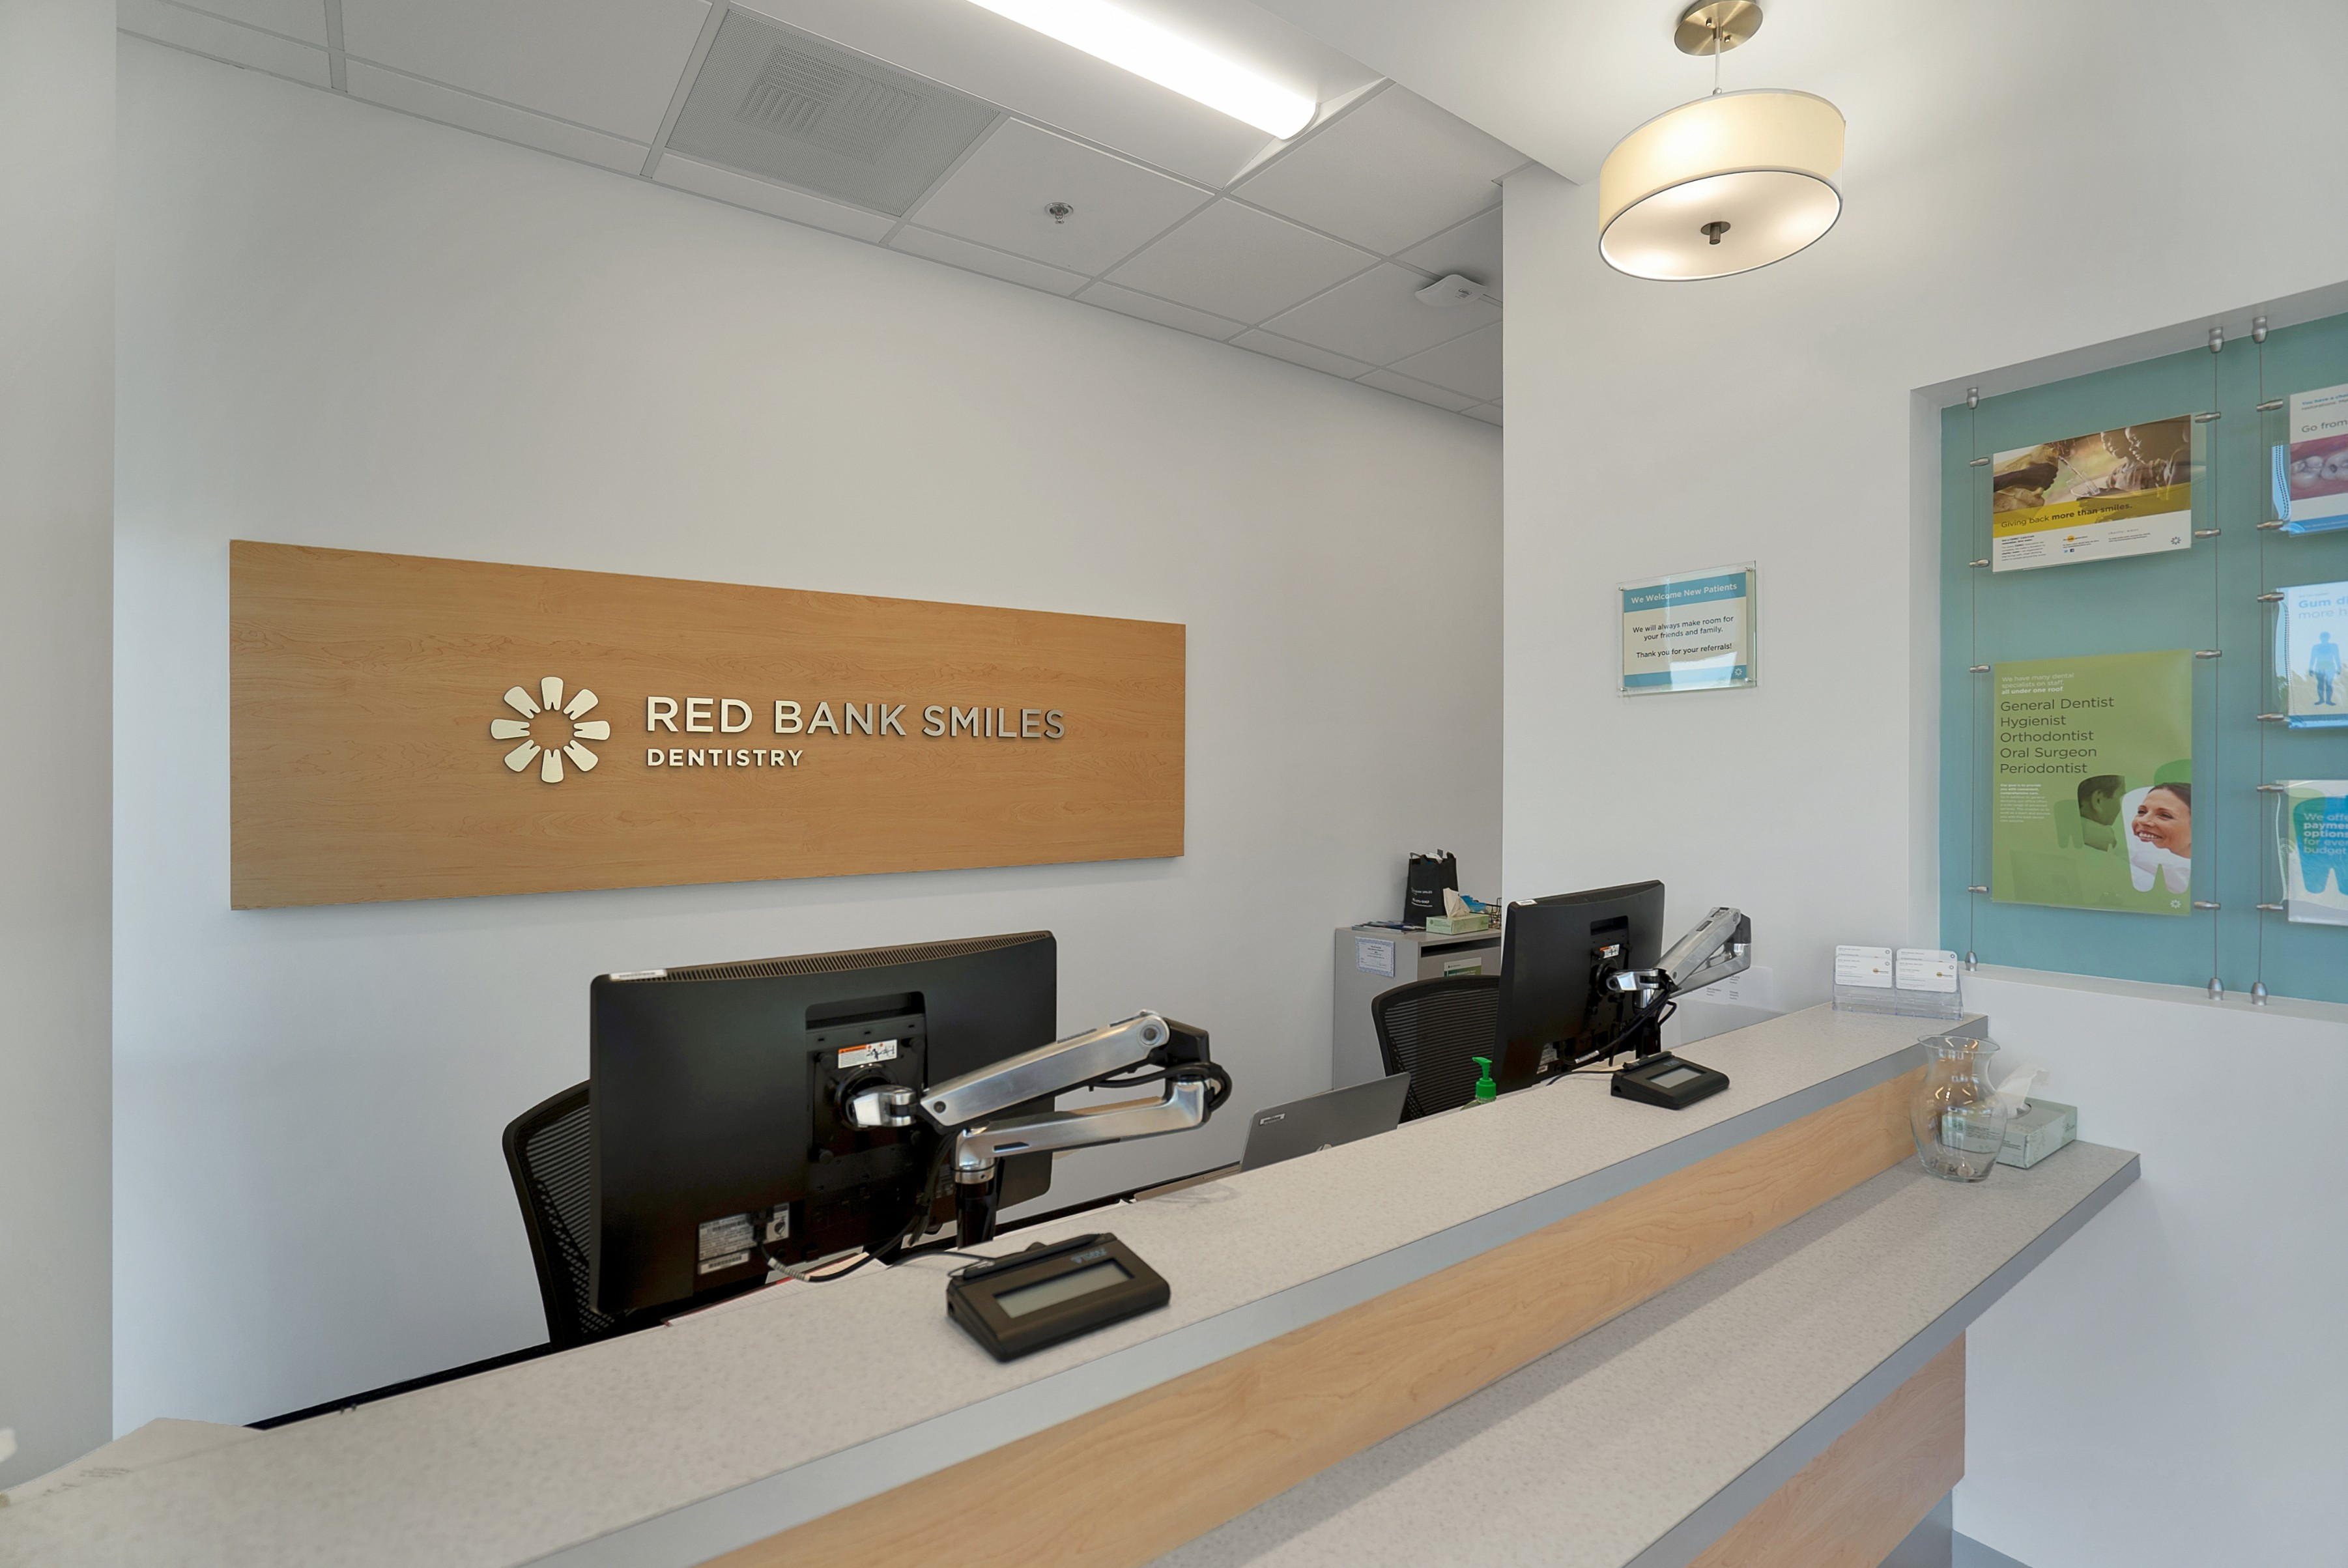 Red Bank Smiles Dentistry image 4